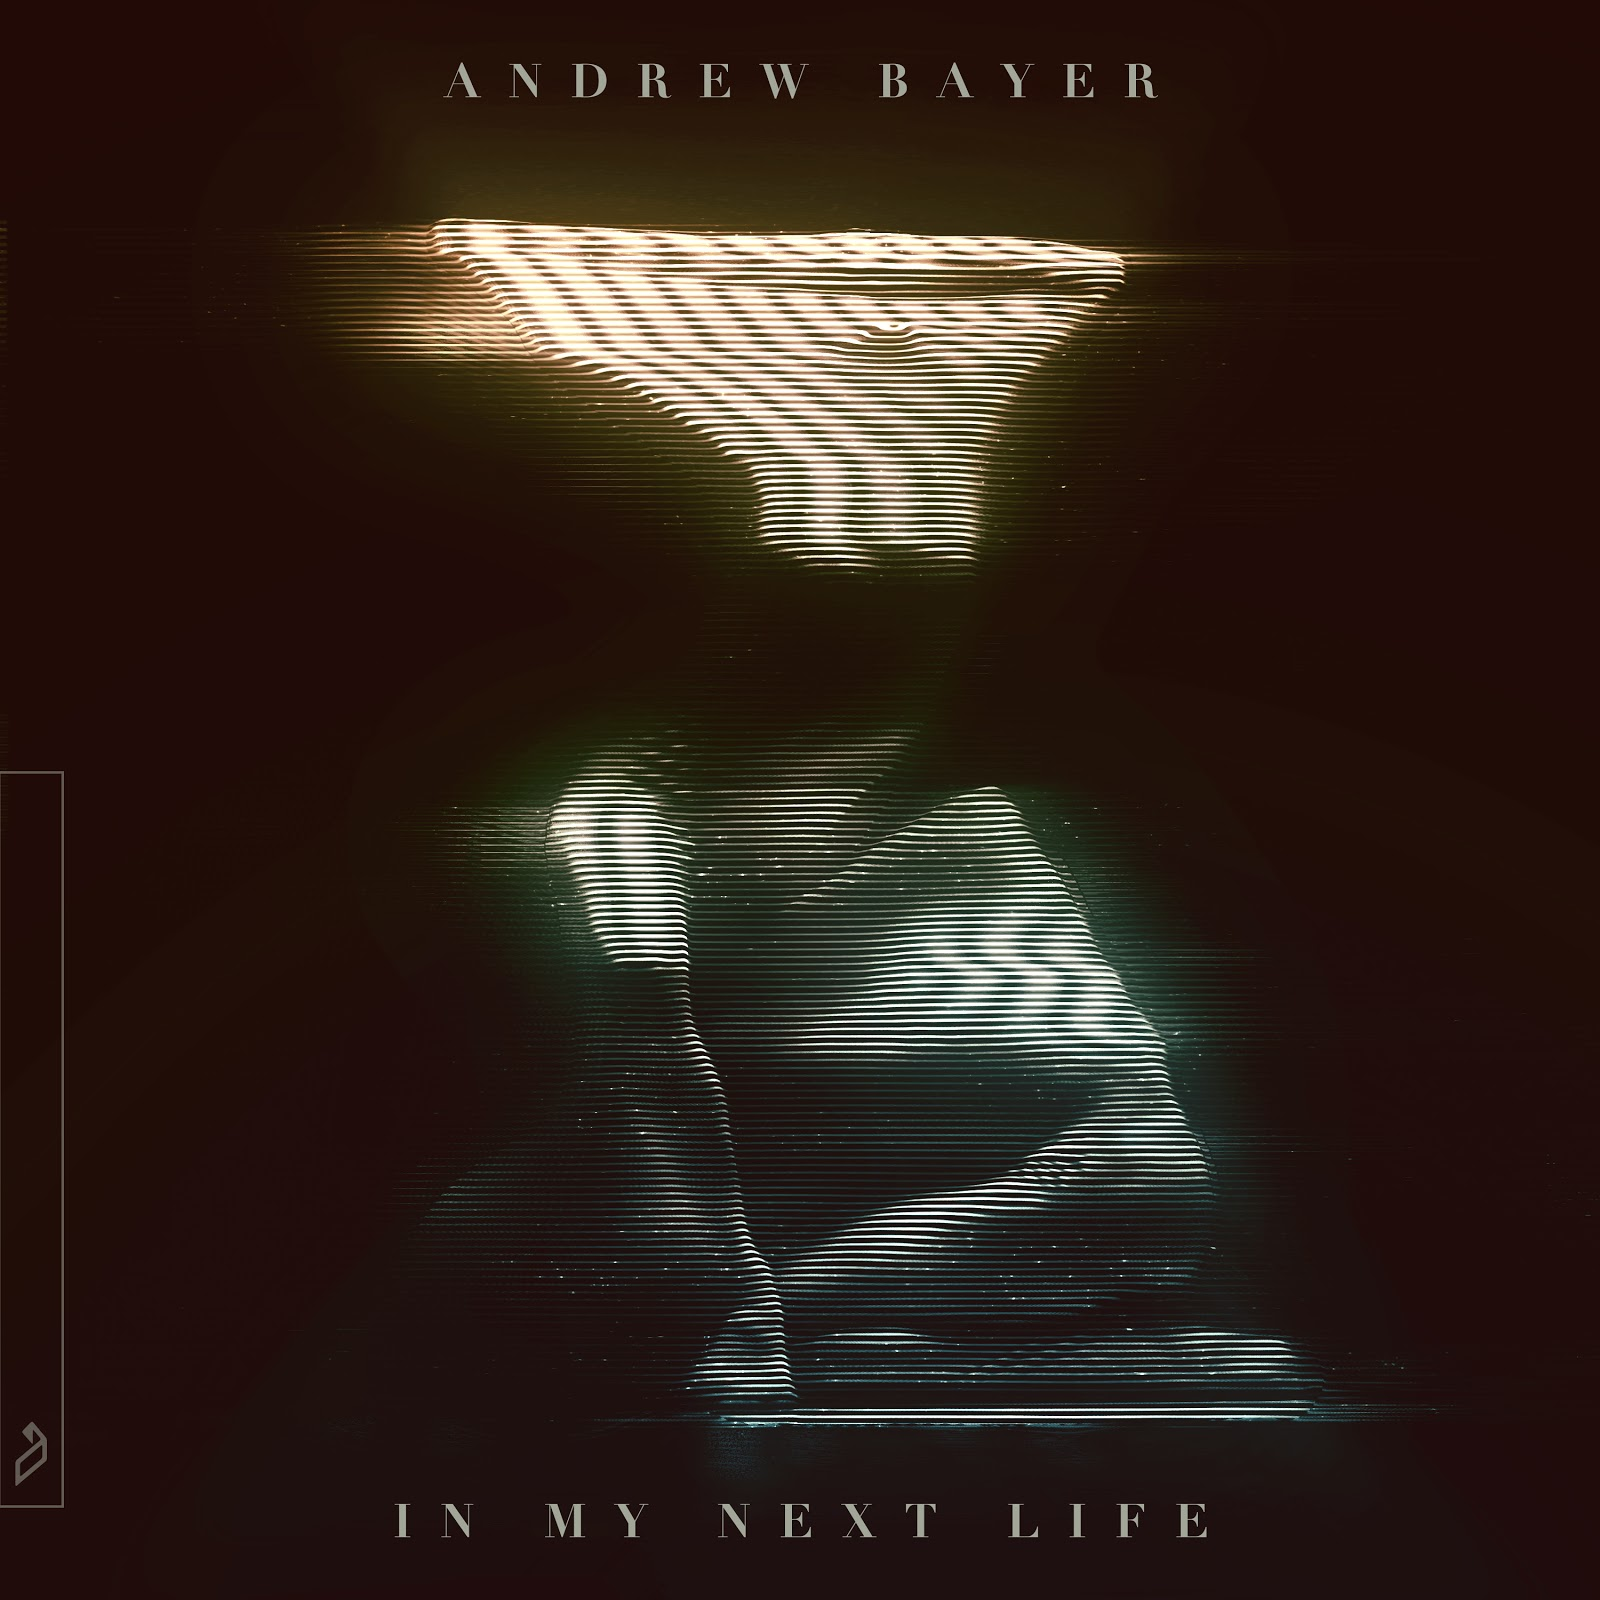 Andrew Bayer presents In My Next Life on Anjunabeats